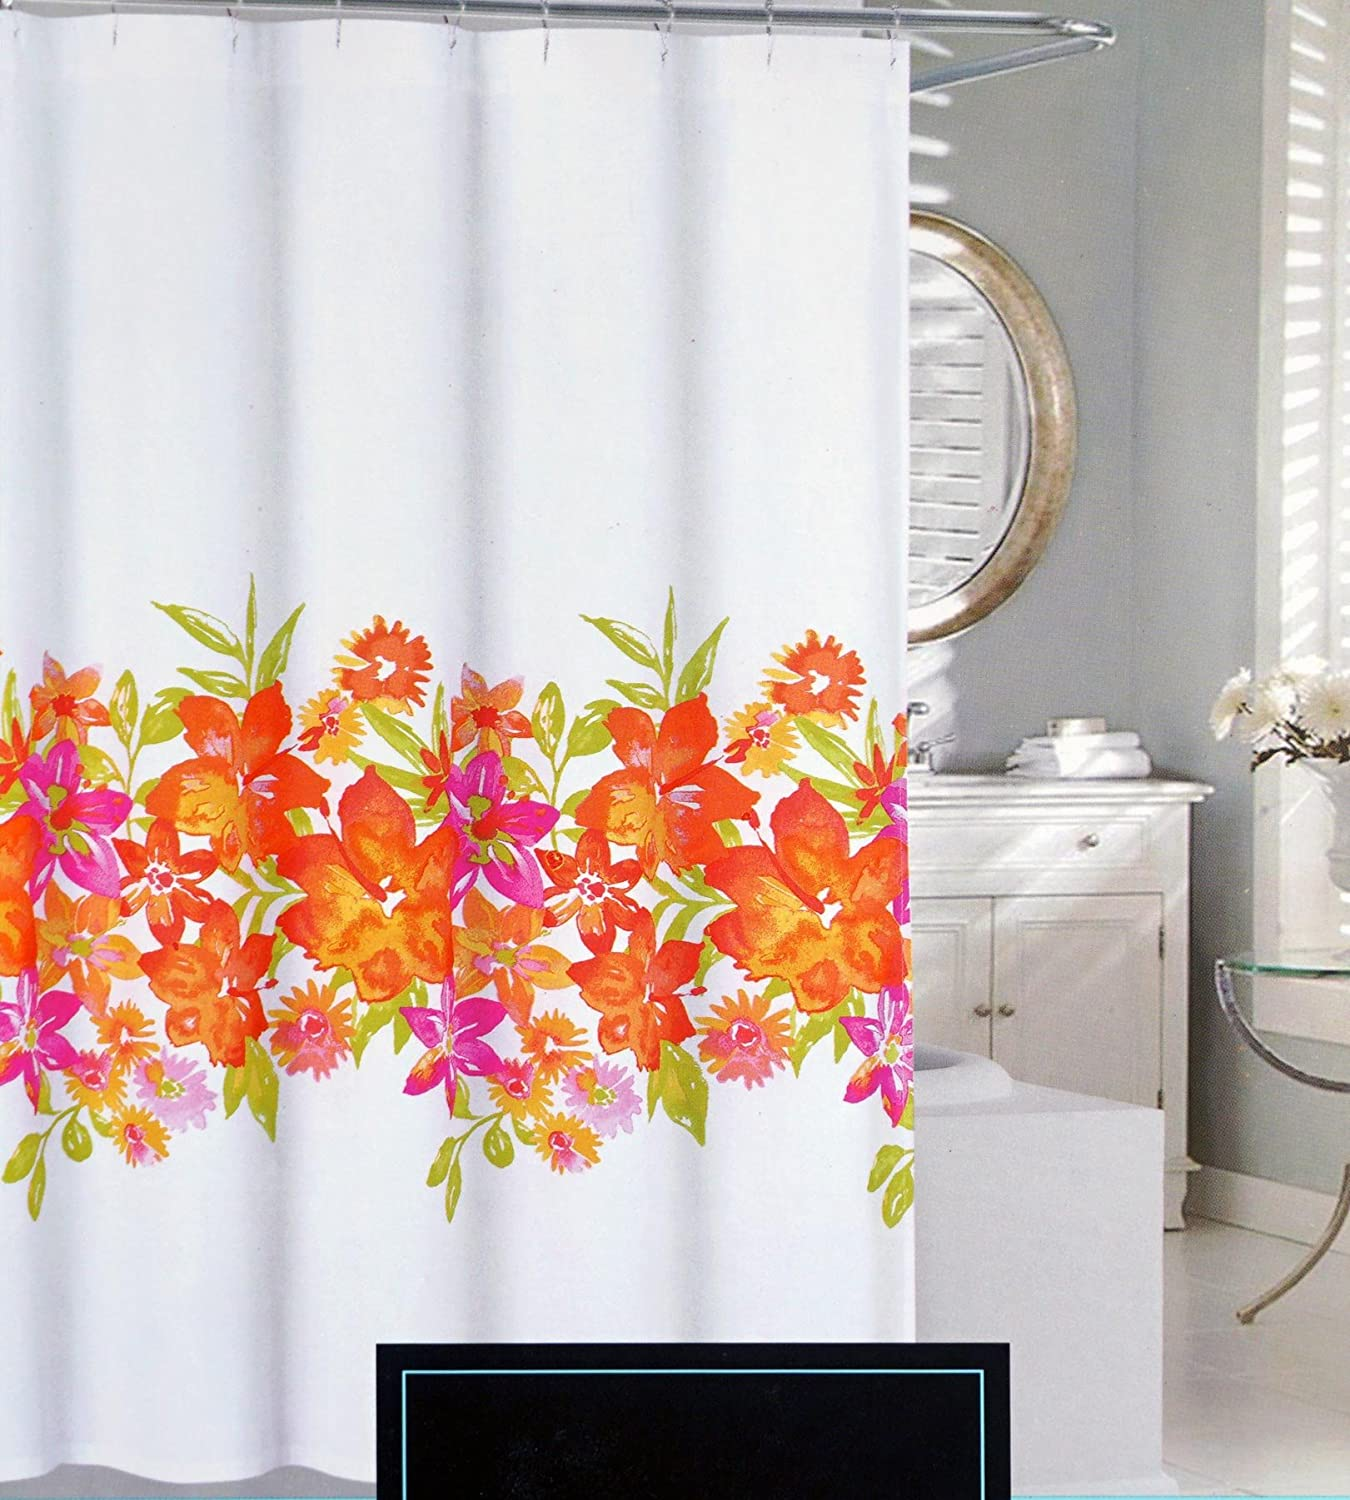 Genial Amazon.com: Cynthia Rowley Fabric Shower Curtain Pink Orange Yellow Green  Floral Pattern    Maui: Home U0026 Kitchen